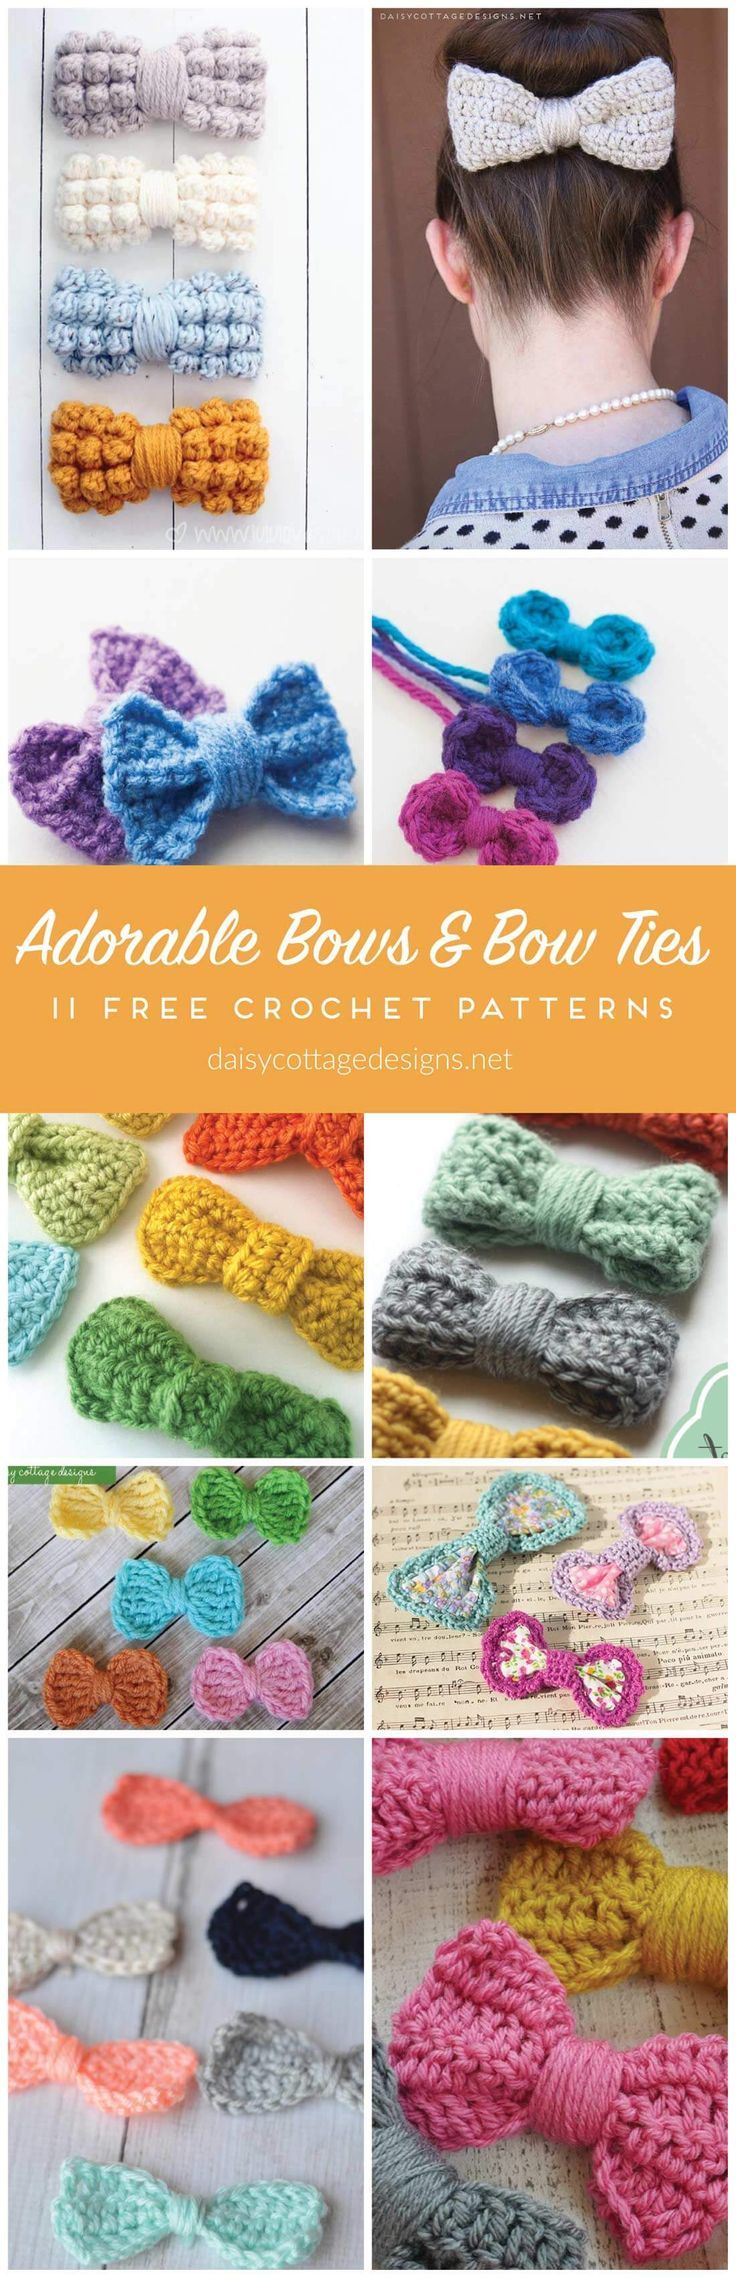 Crochet Bow and Bow Tie Pattern Collection from #crochetbowpattern